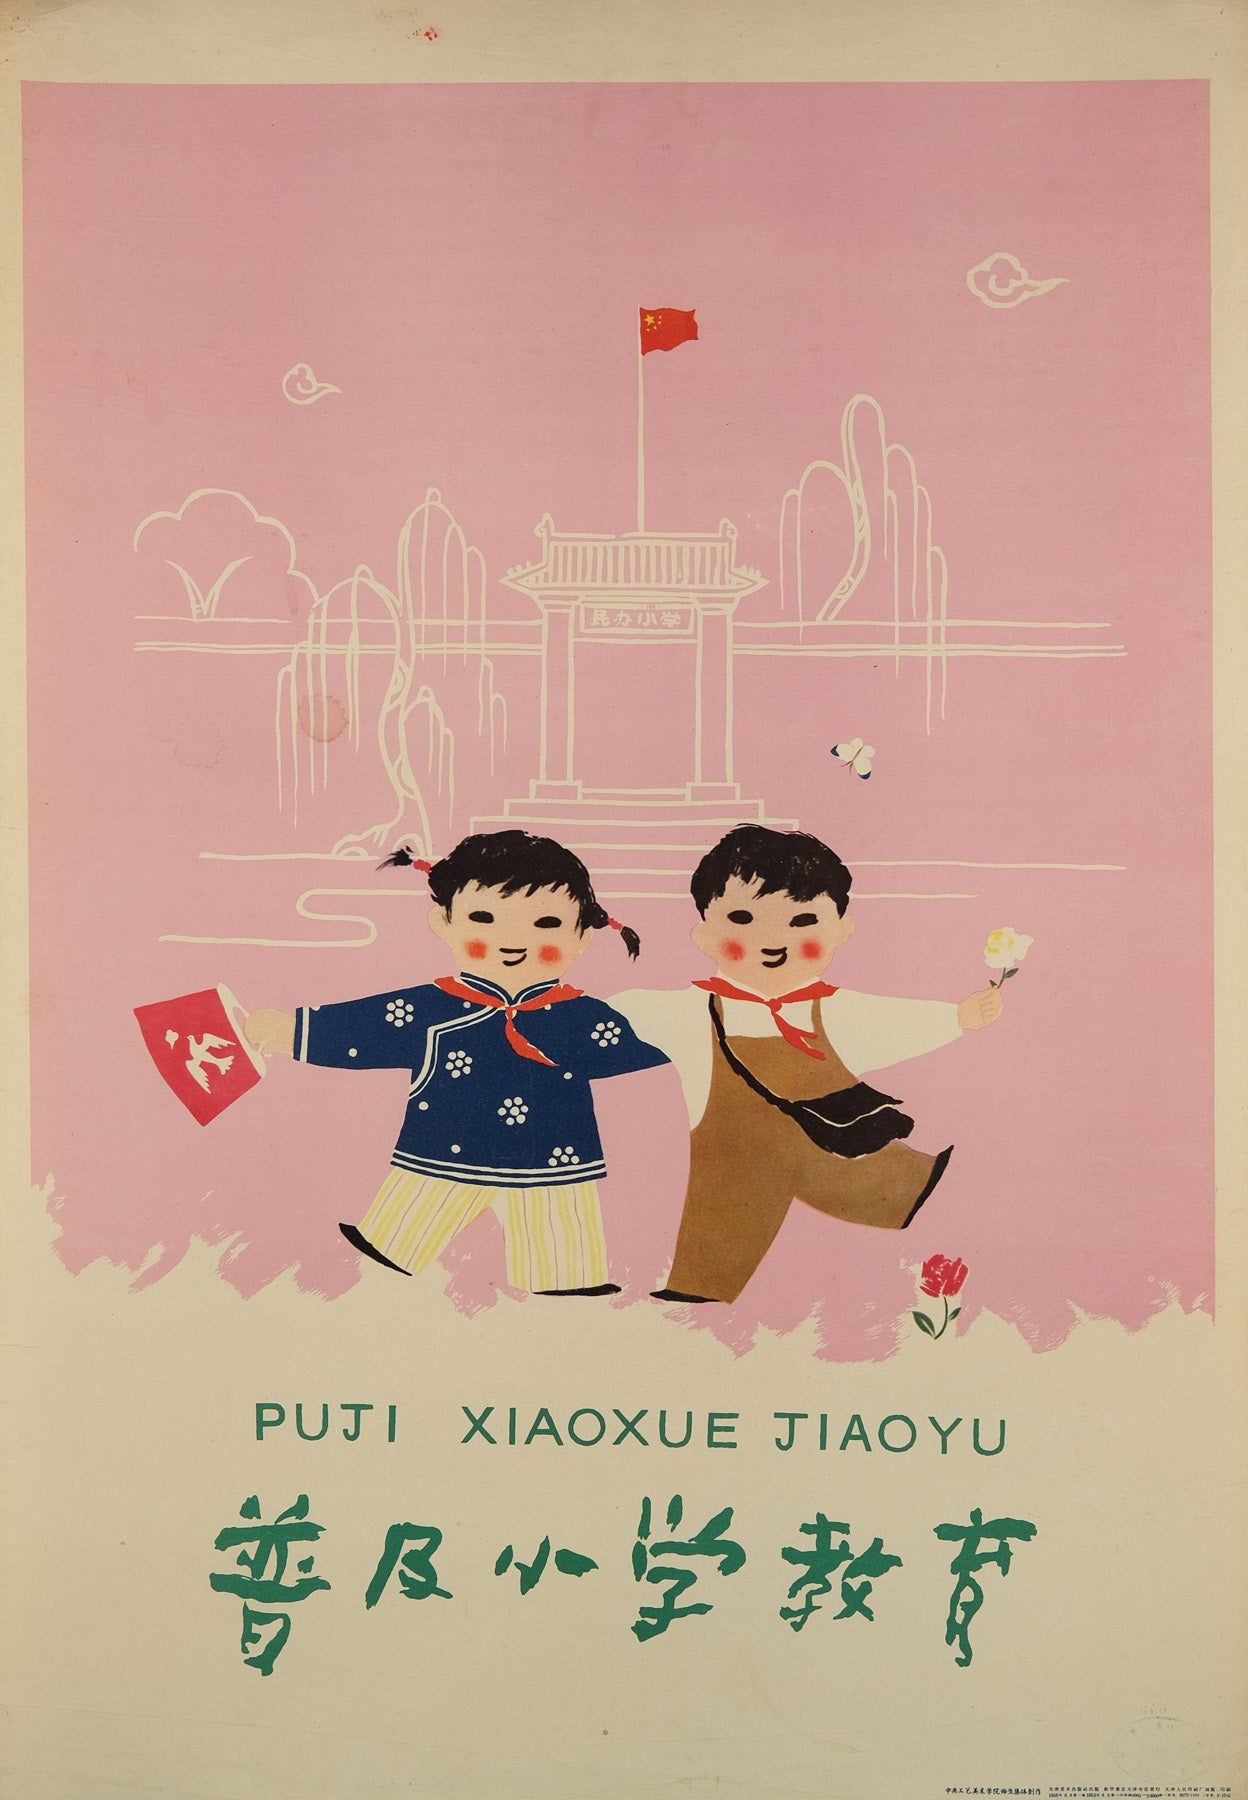 image of the original vintage 1958 Chinese communist propaganda poster titled Make primary education universal